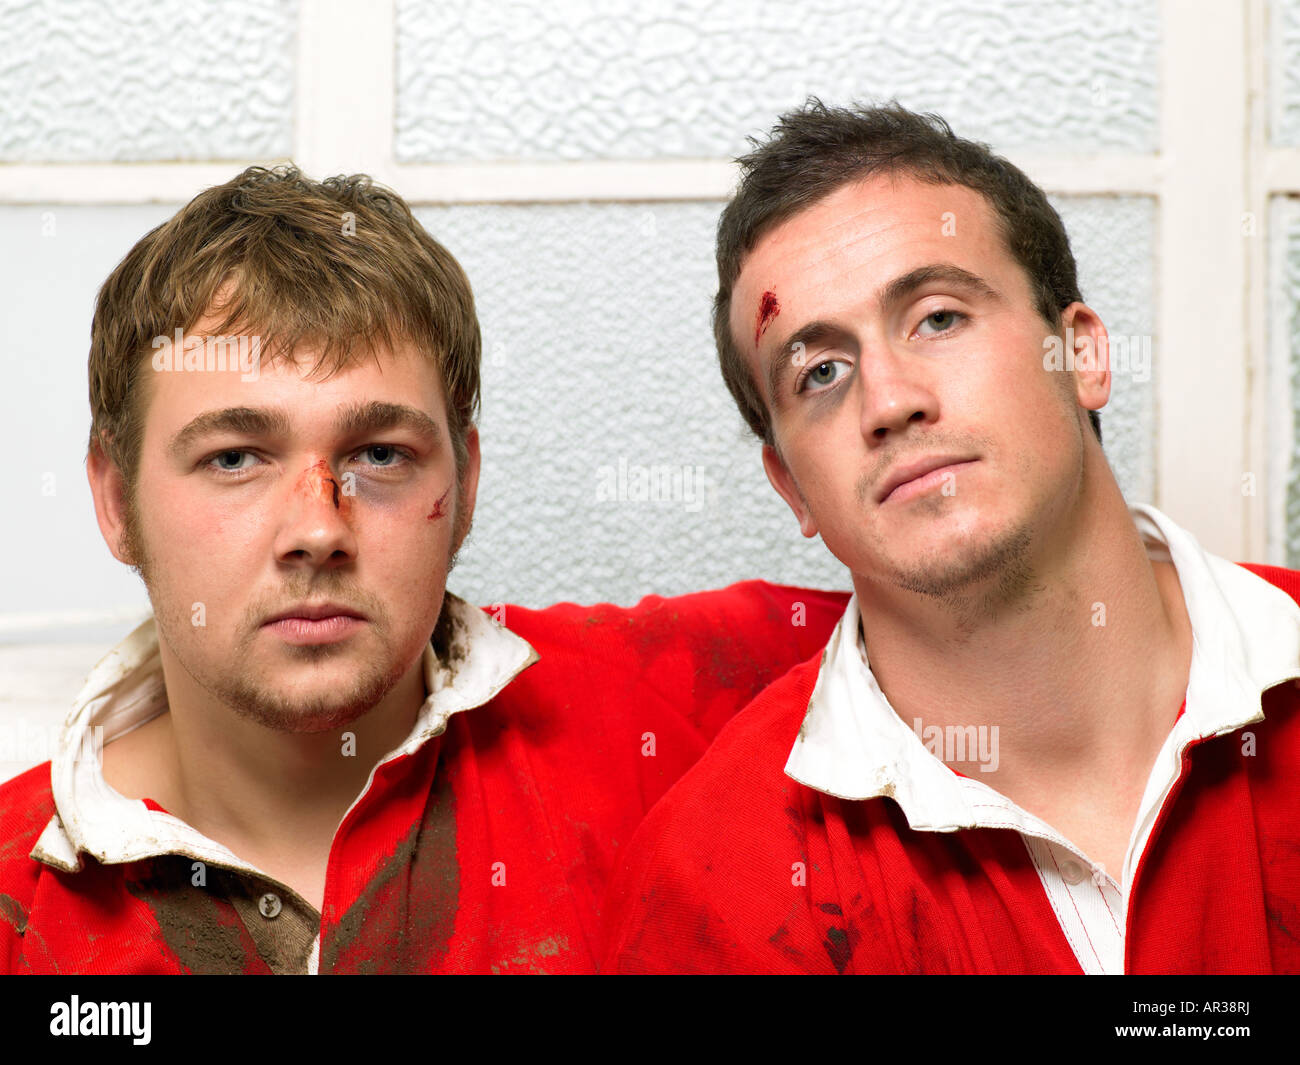 Bruised rugby players - Stock Image